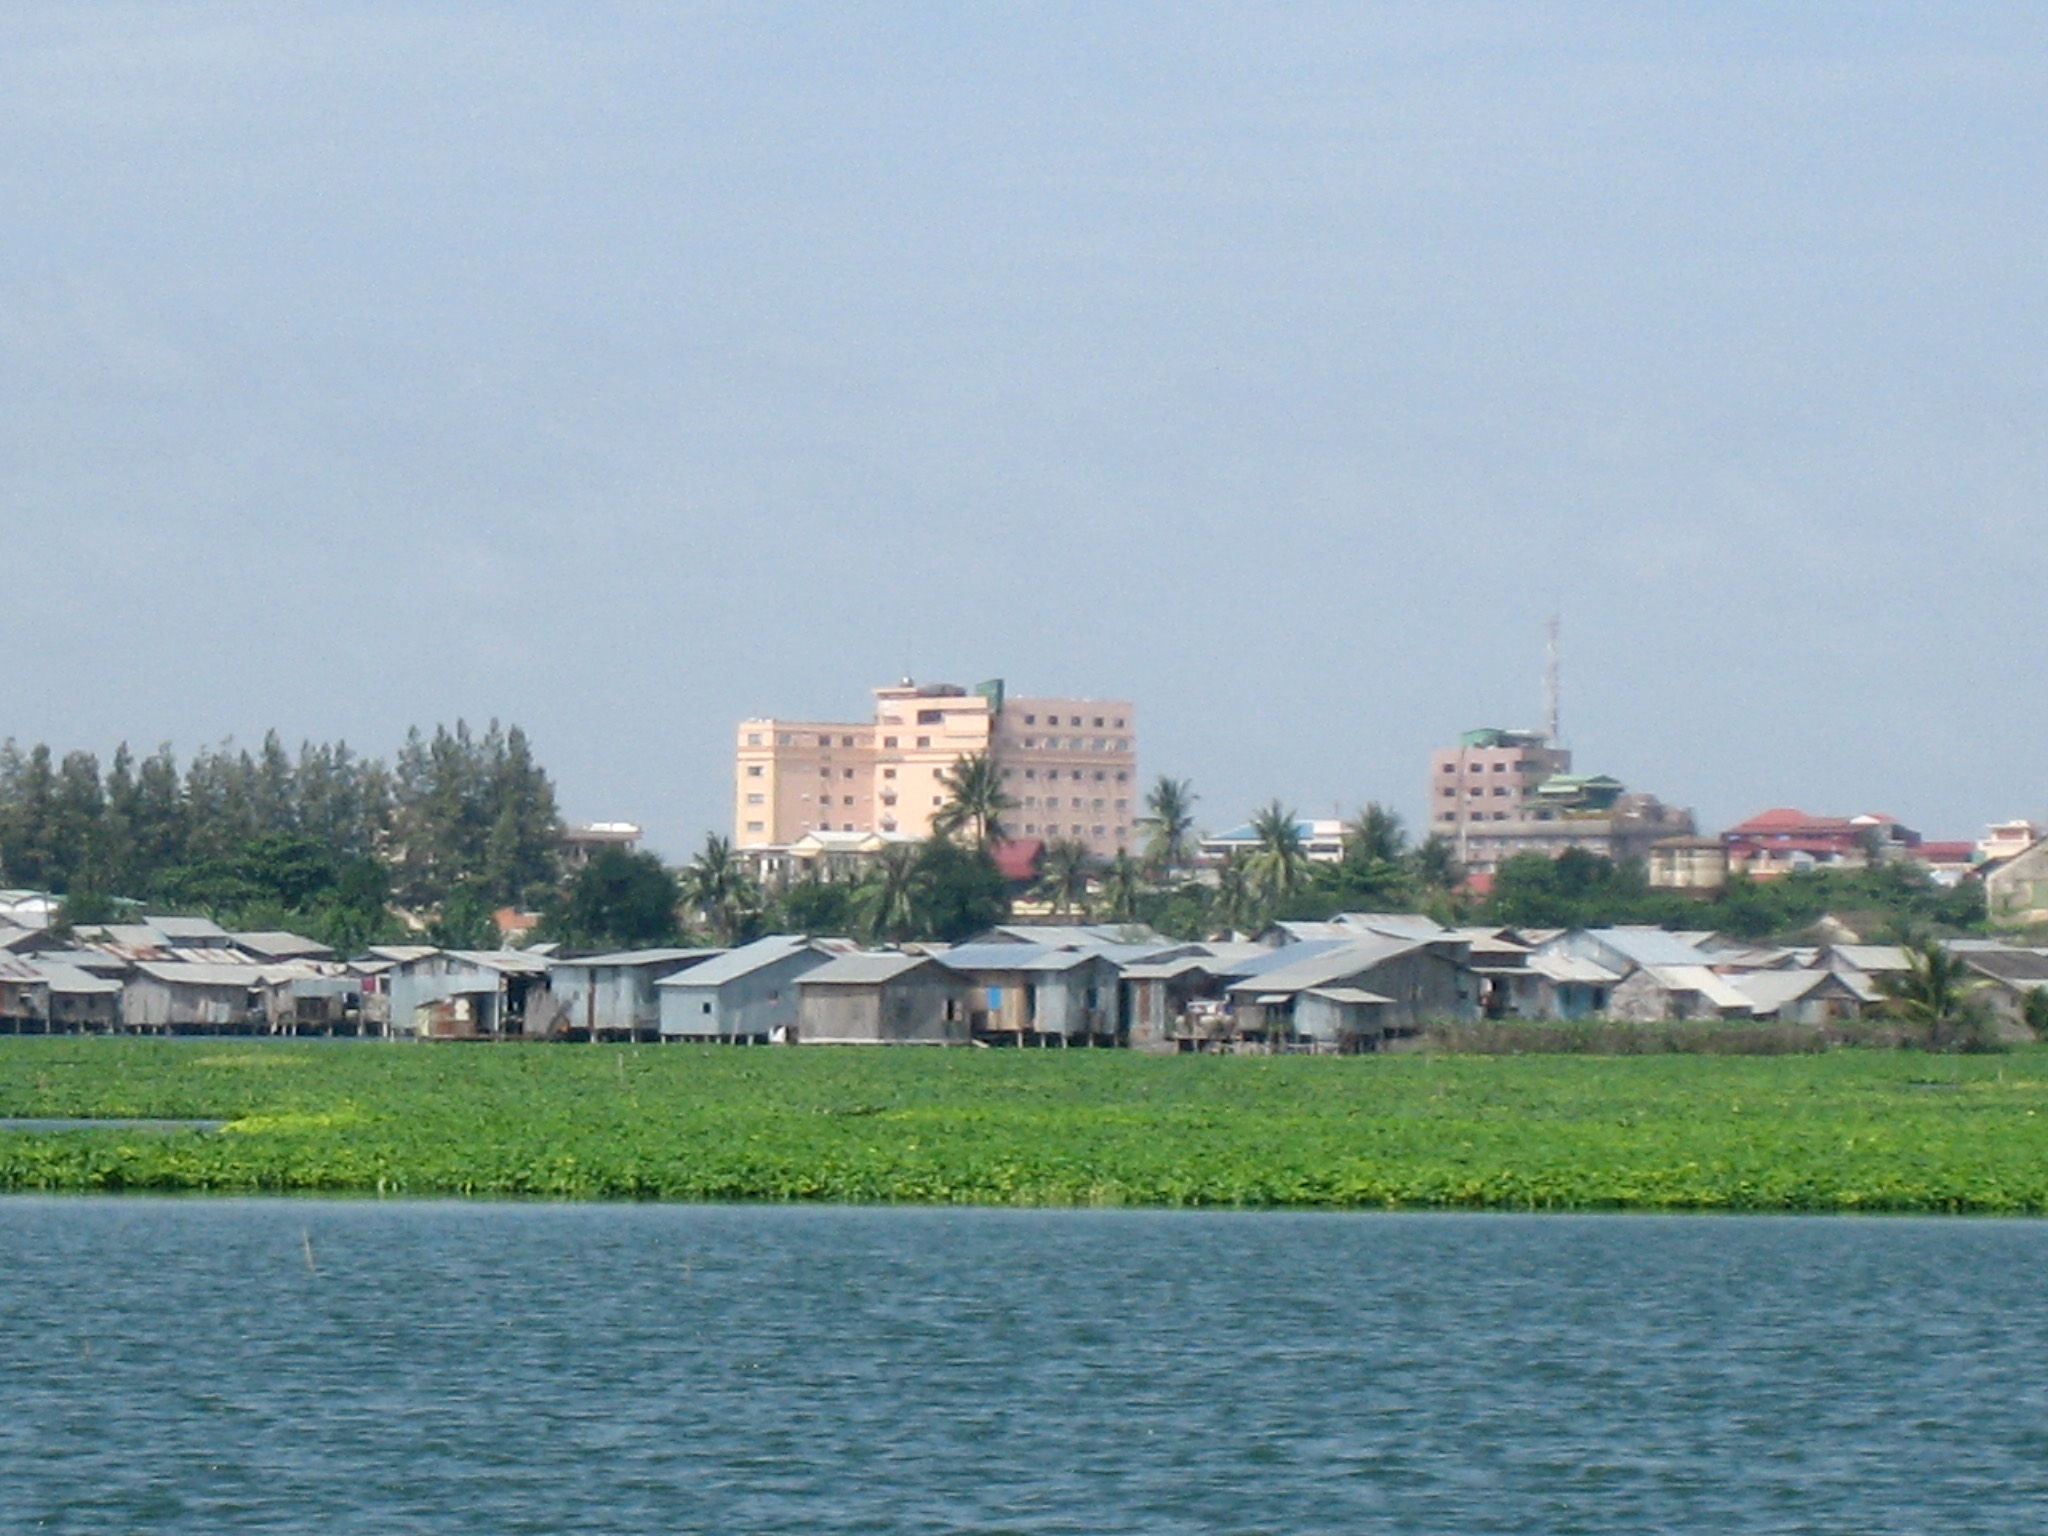 Boeung Kak Lake before the evictions.